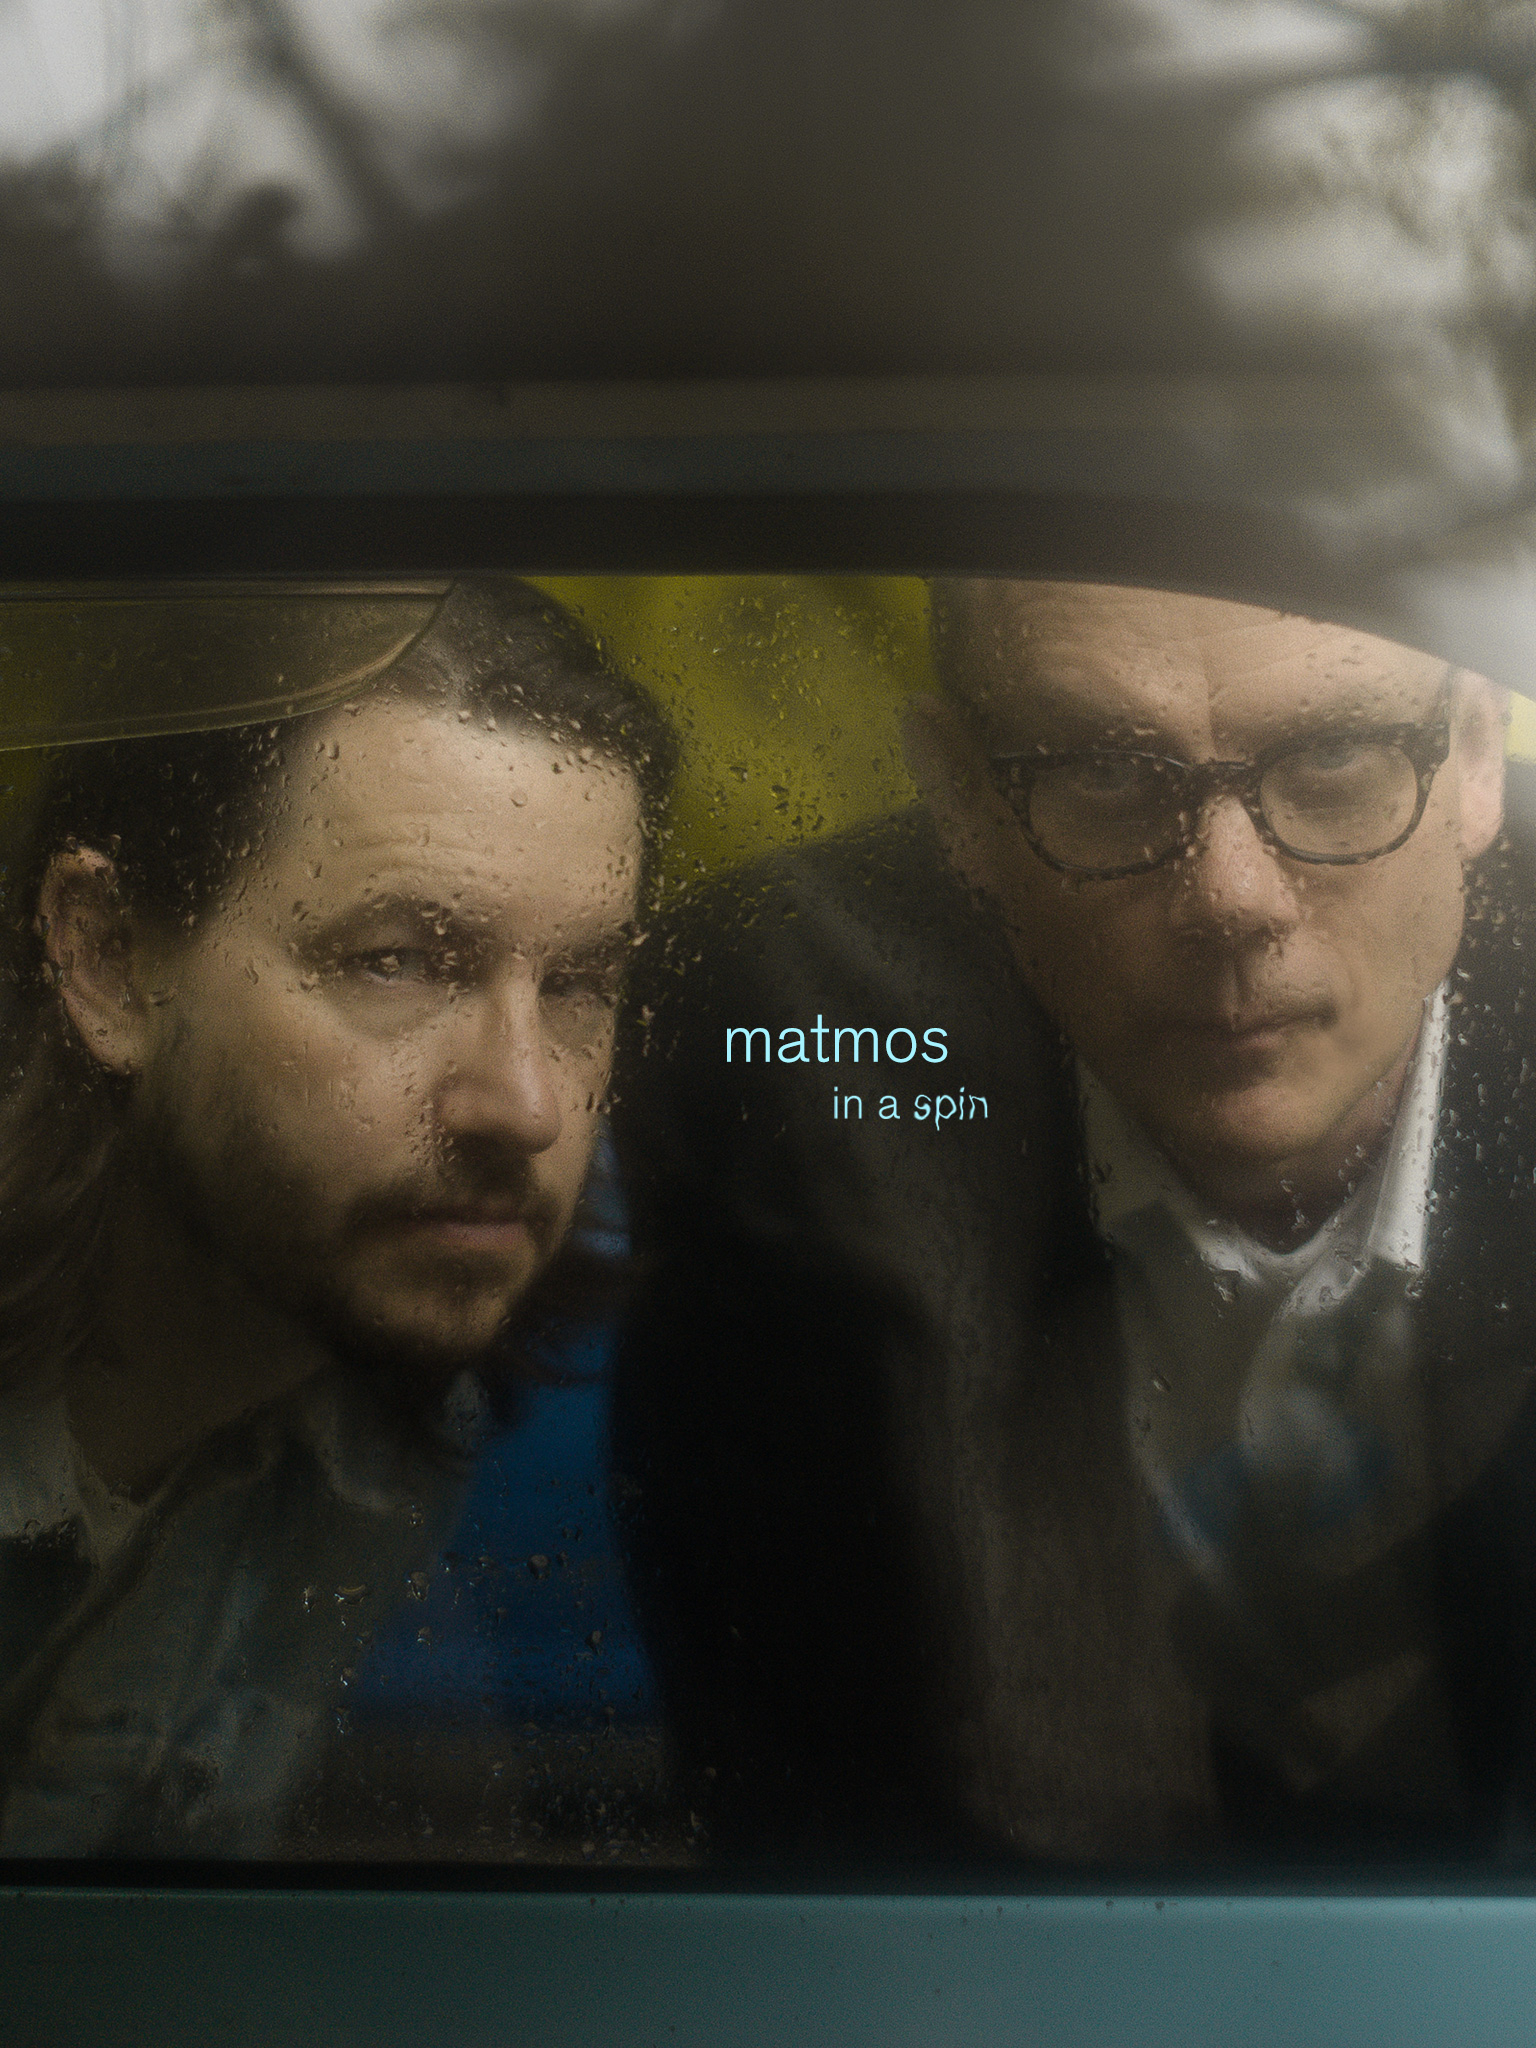 Matmos: In a spin